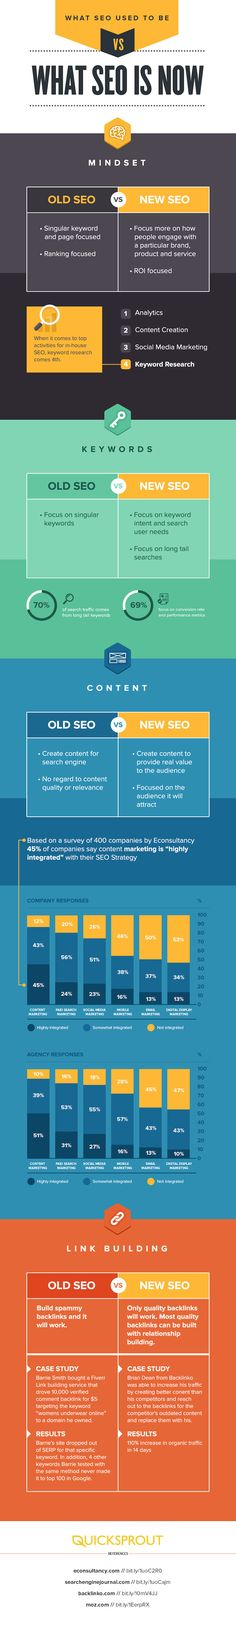 SEO Versus New SEO: What You Need to Know - #infographic